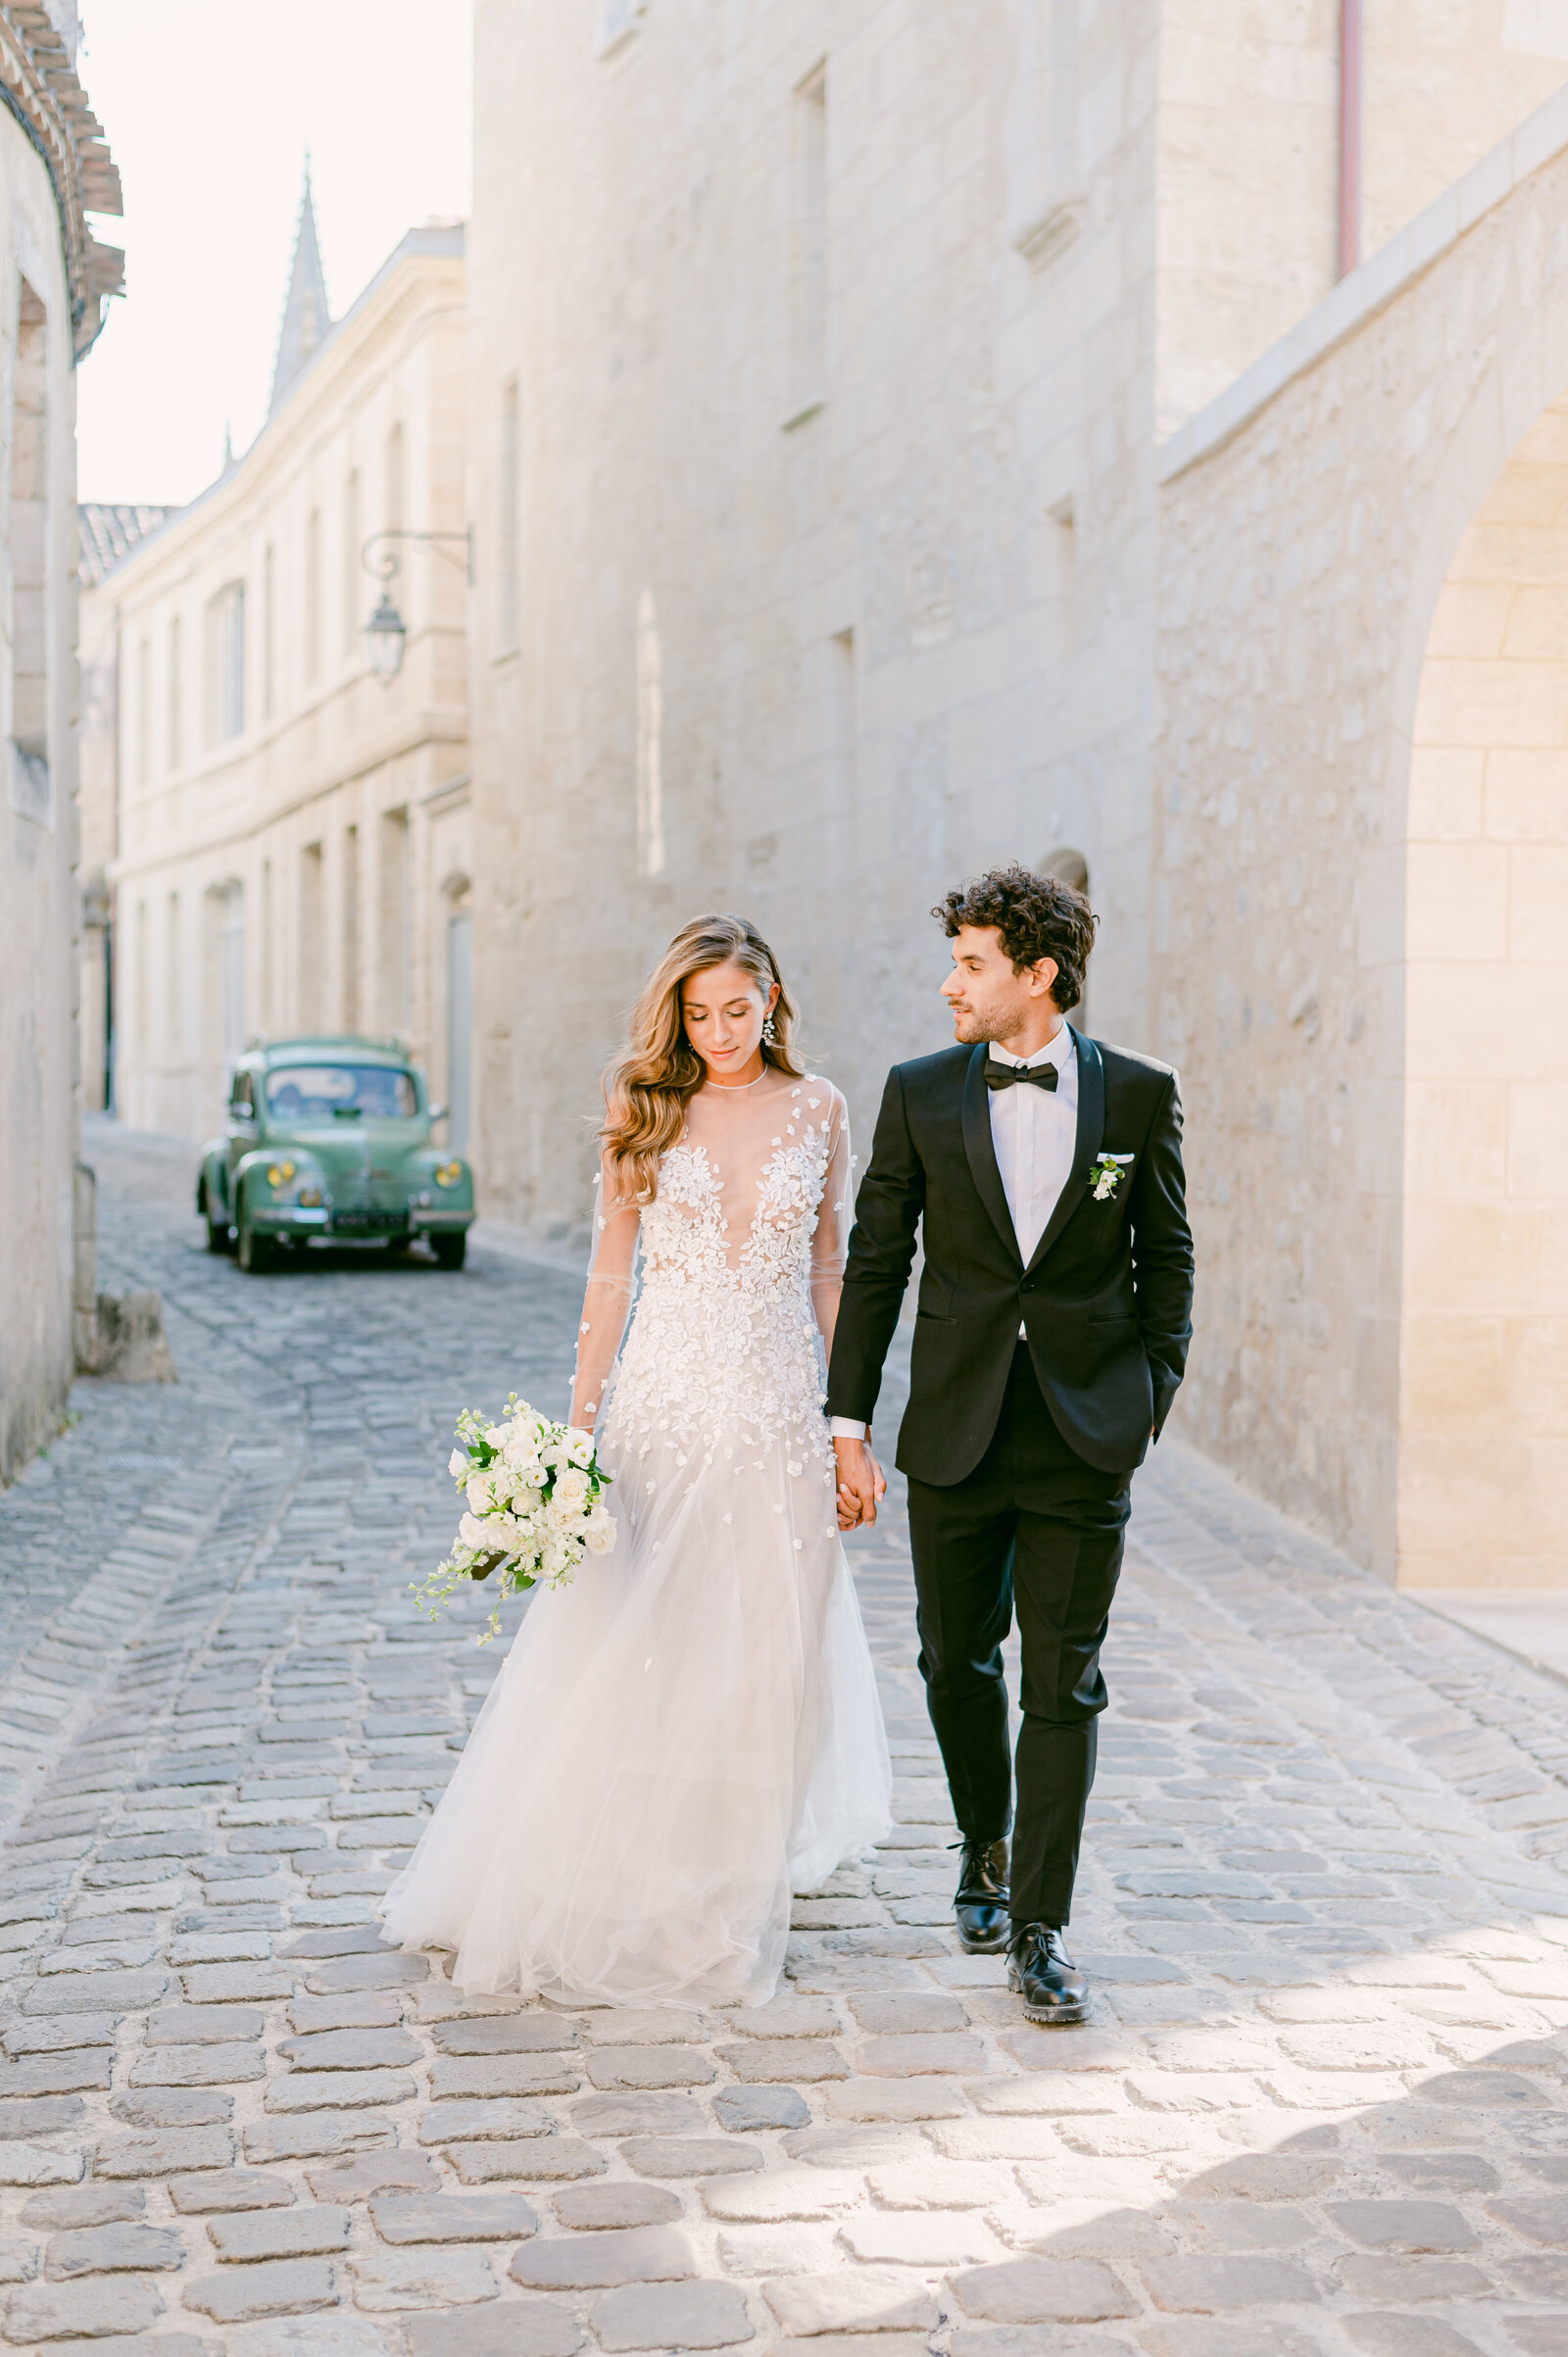 wedding in France Chateau wedding ideas4